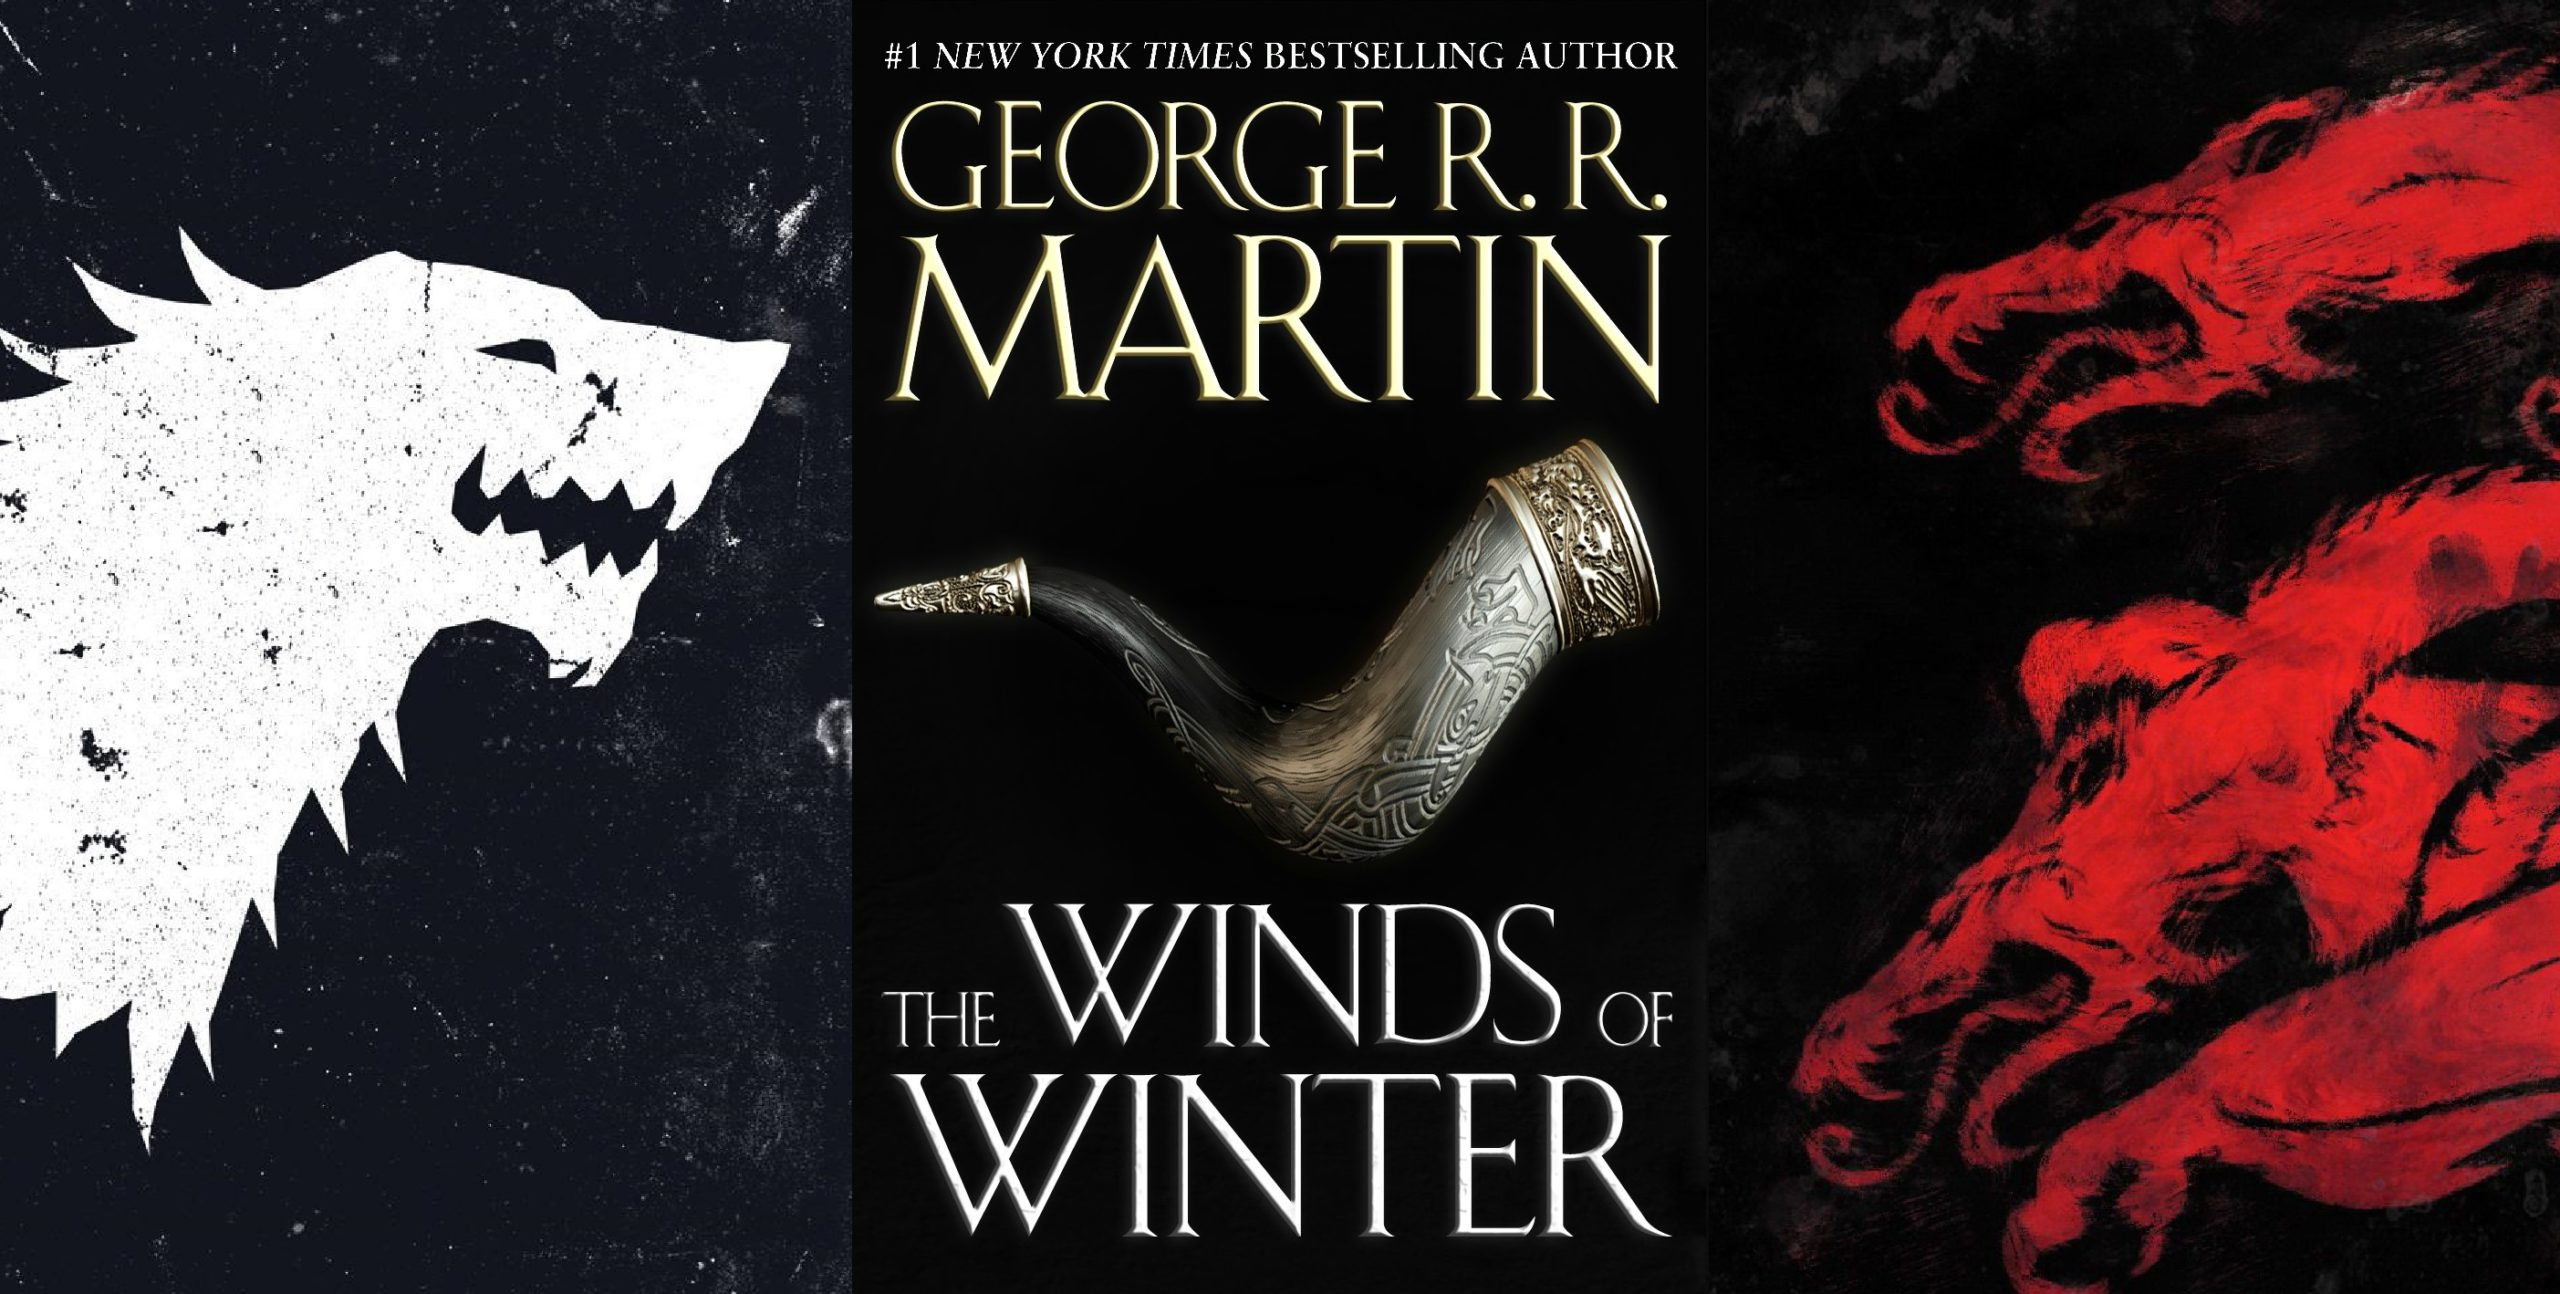 The Winds of Winter Release Date is Summer 2020